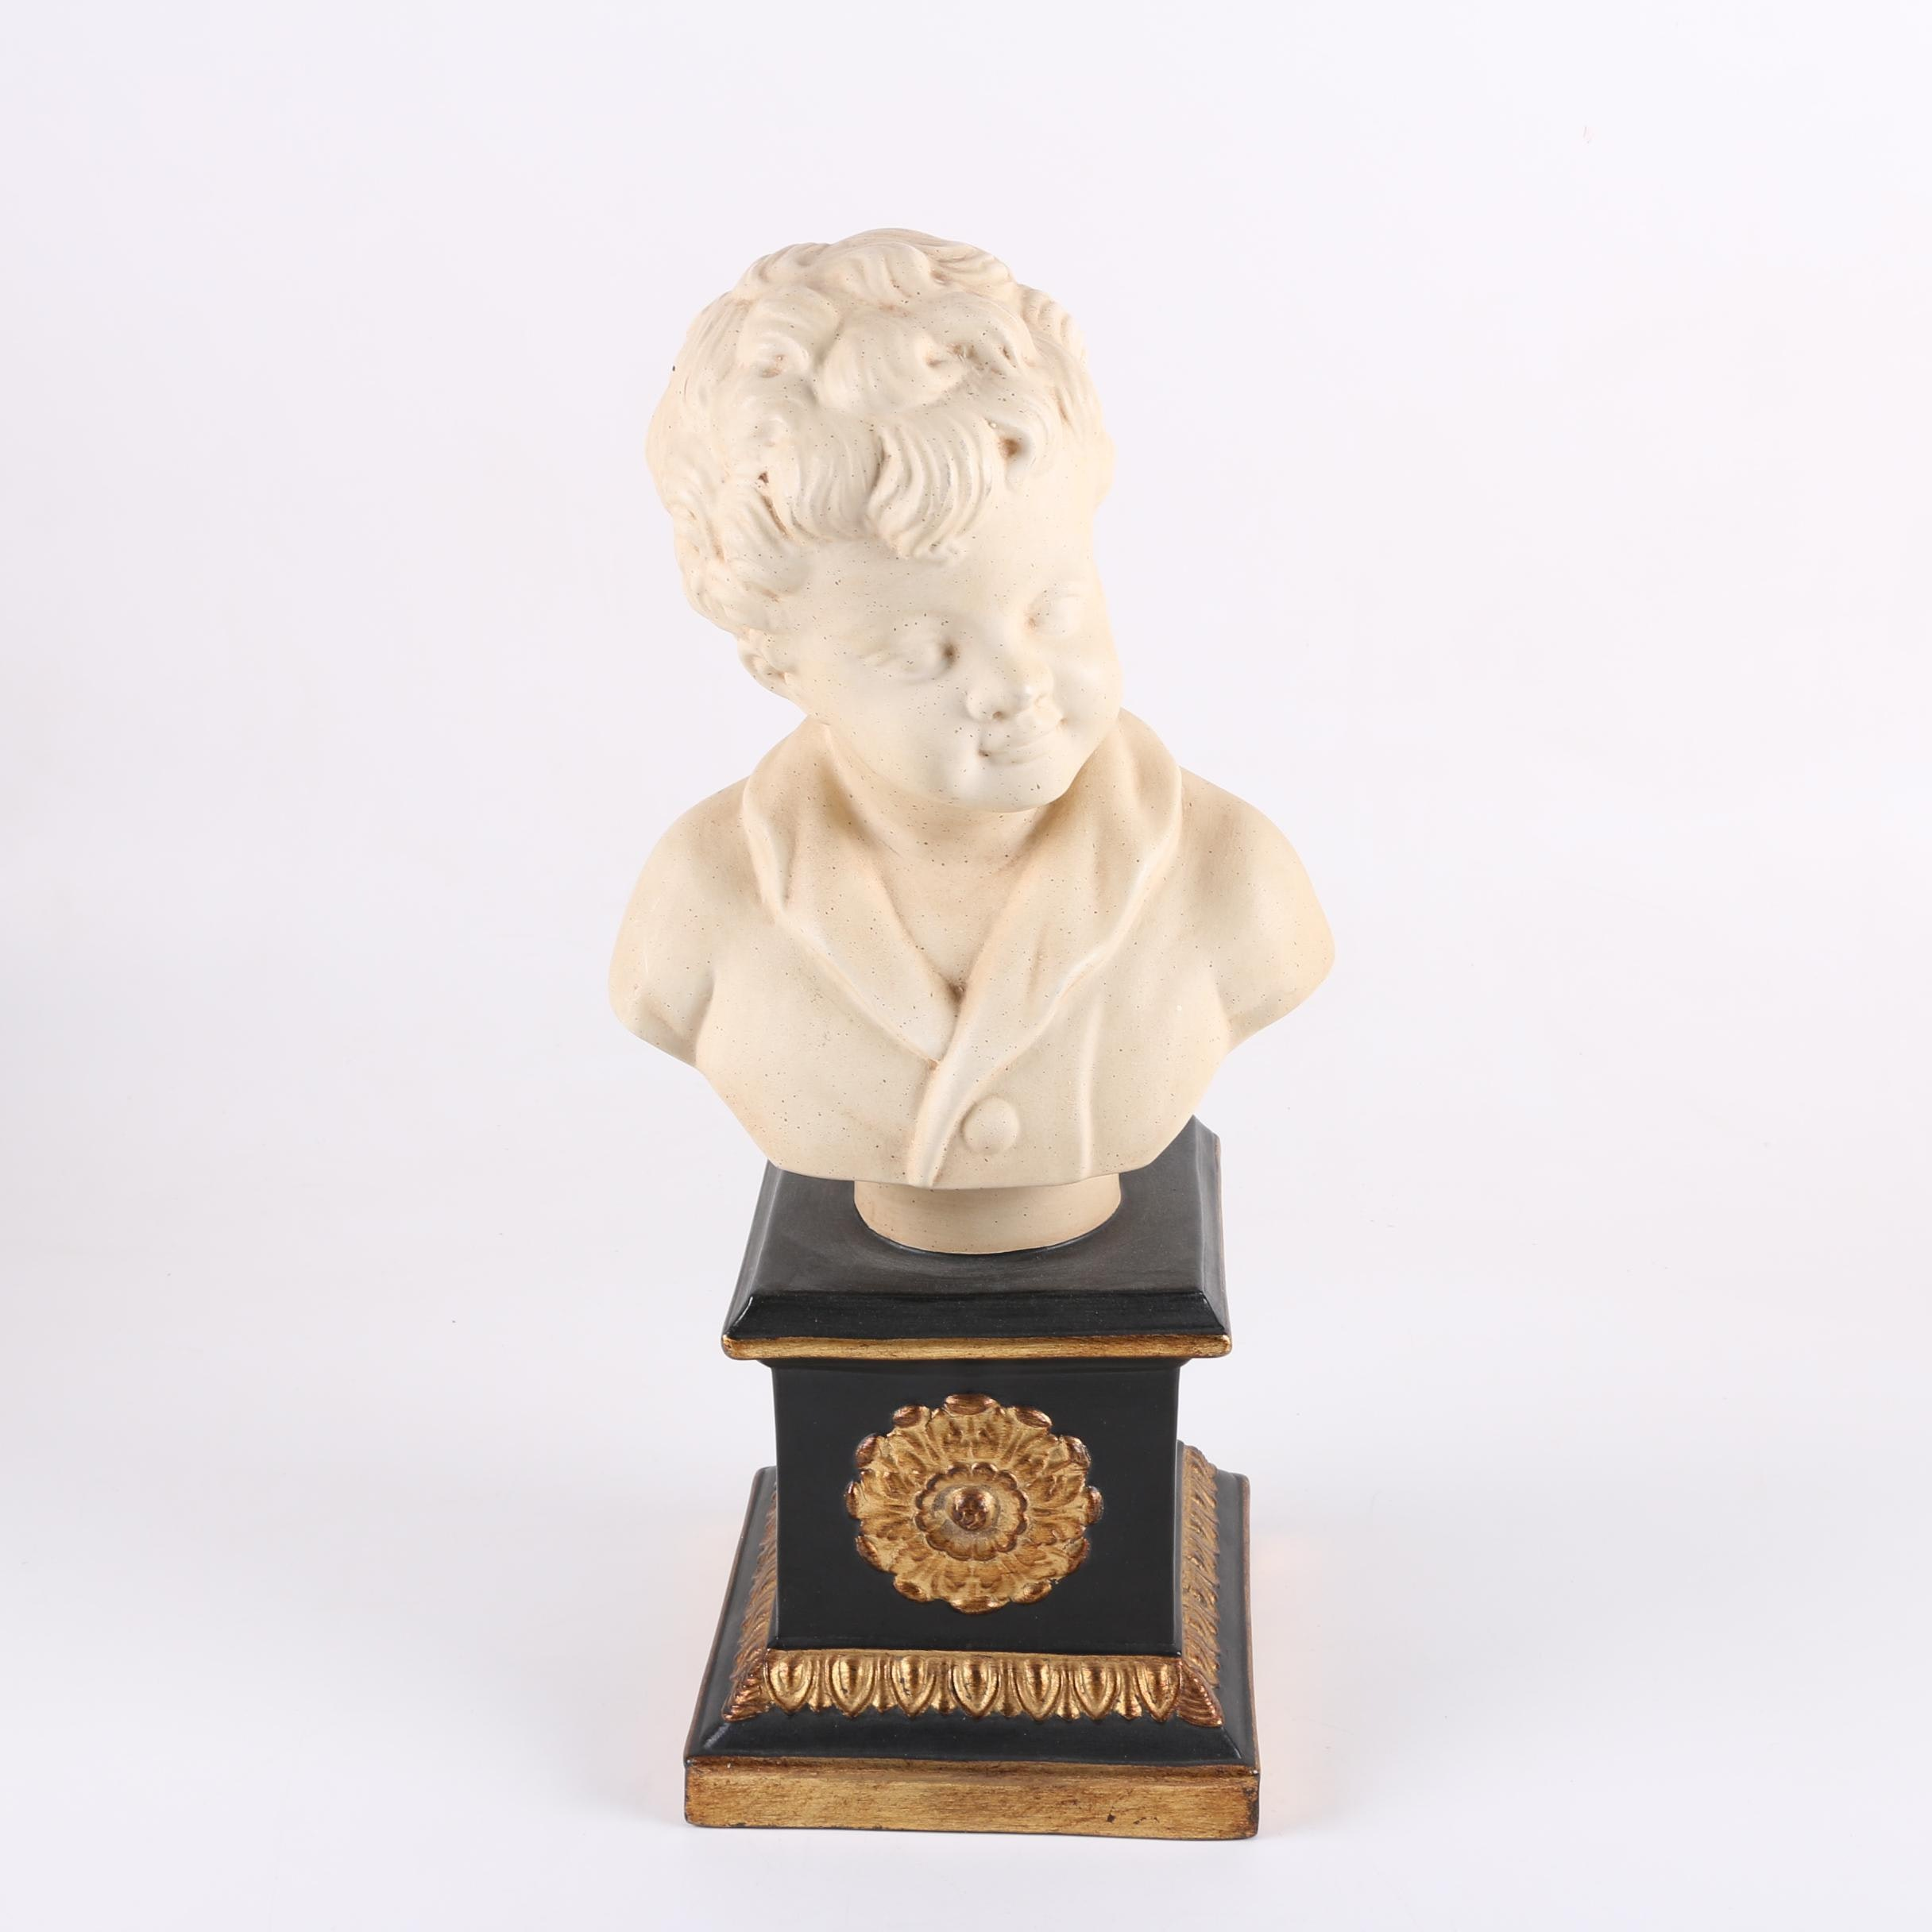 Metal and Plaster Bust of Young Boy with Italian-Made Base